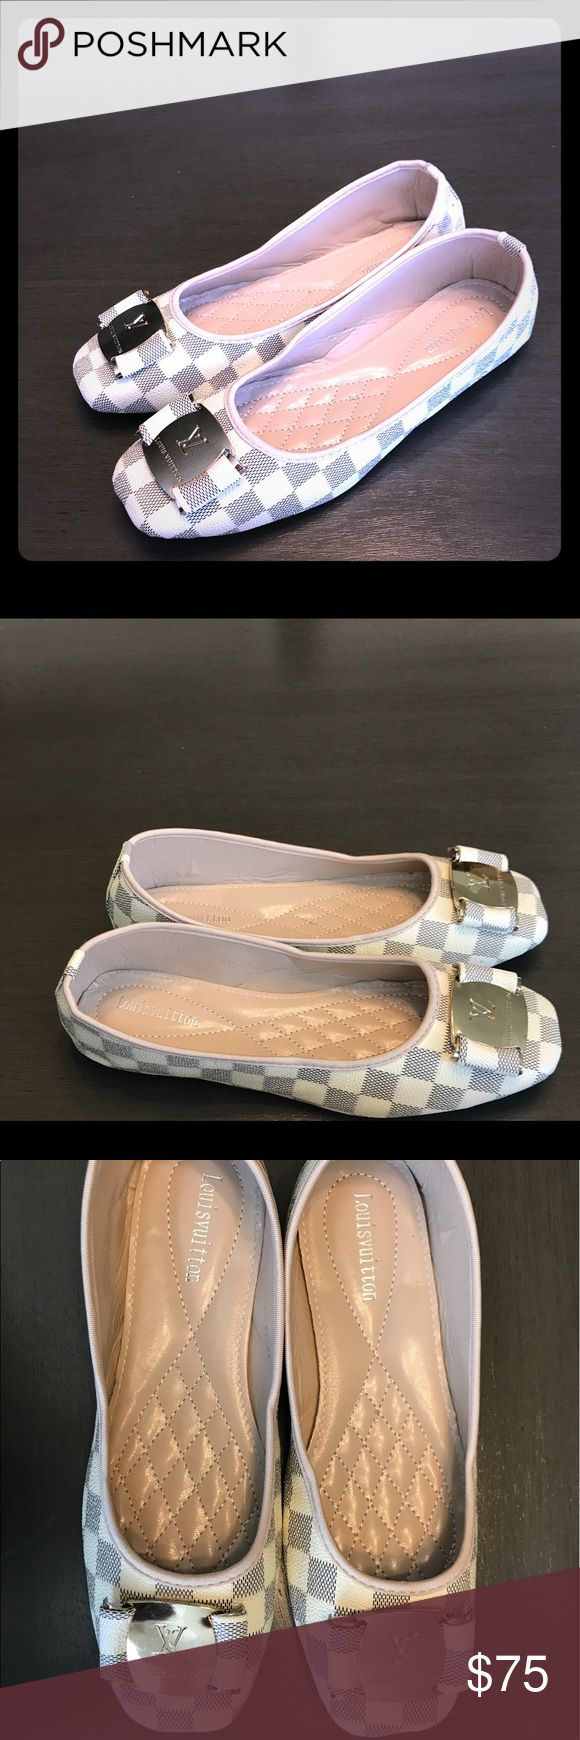 Louis Vuitton checkered flats Louis Vuitton checkered flats perfect for summer events! Fits a women's size 9. Louis Vuitton Shoes Flats & Loafers